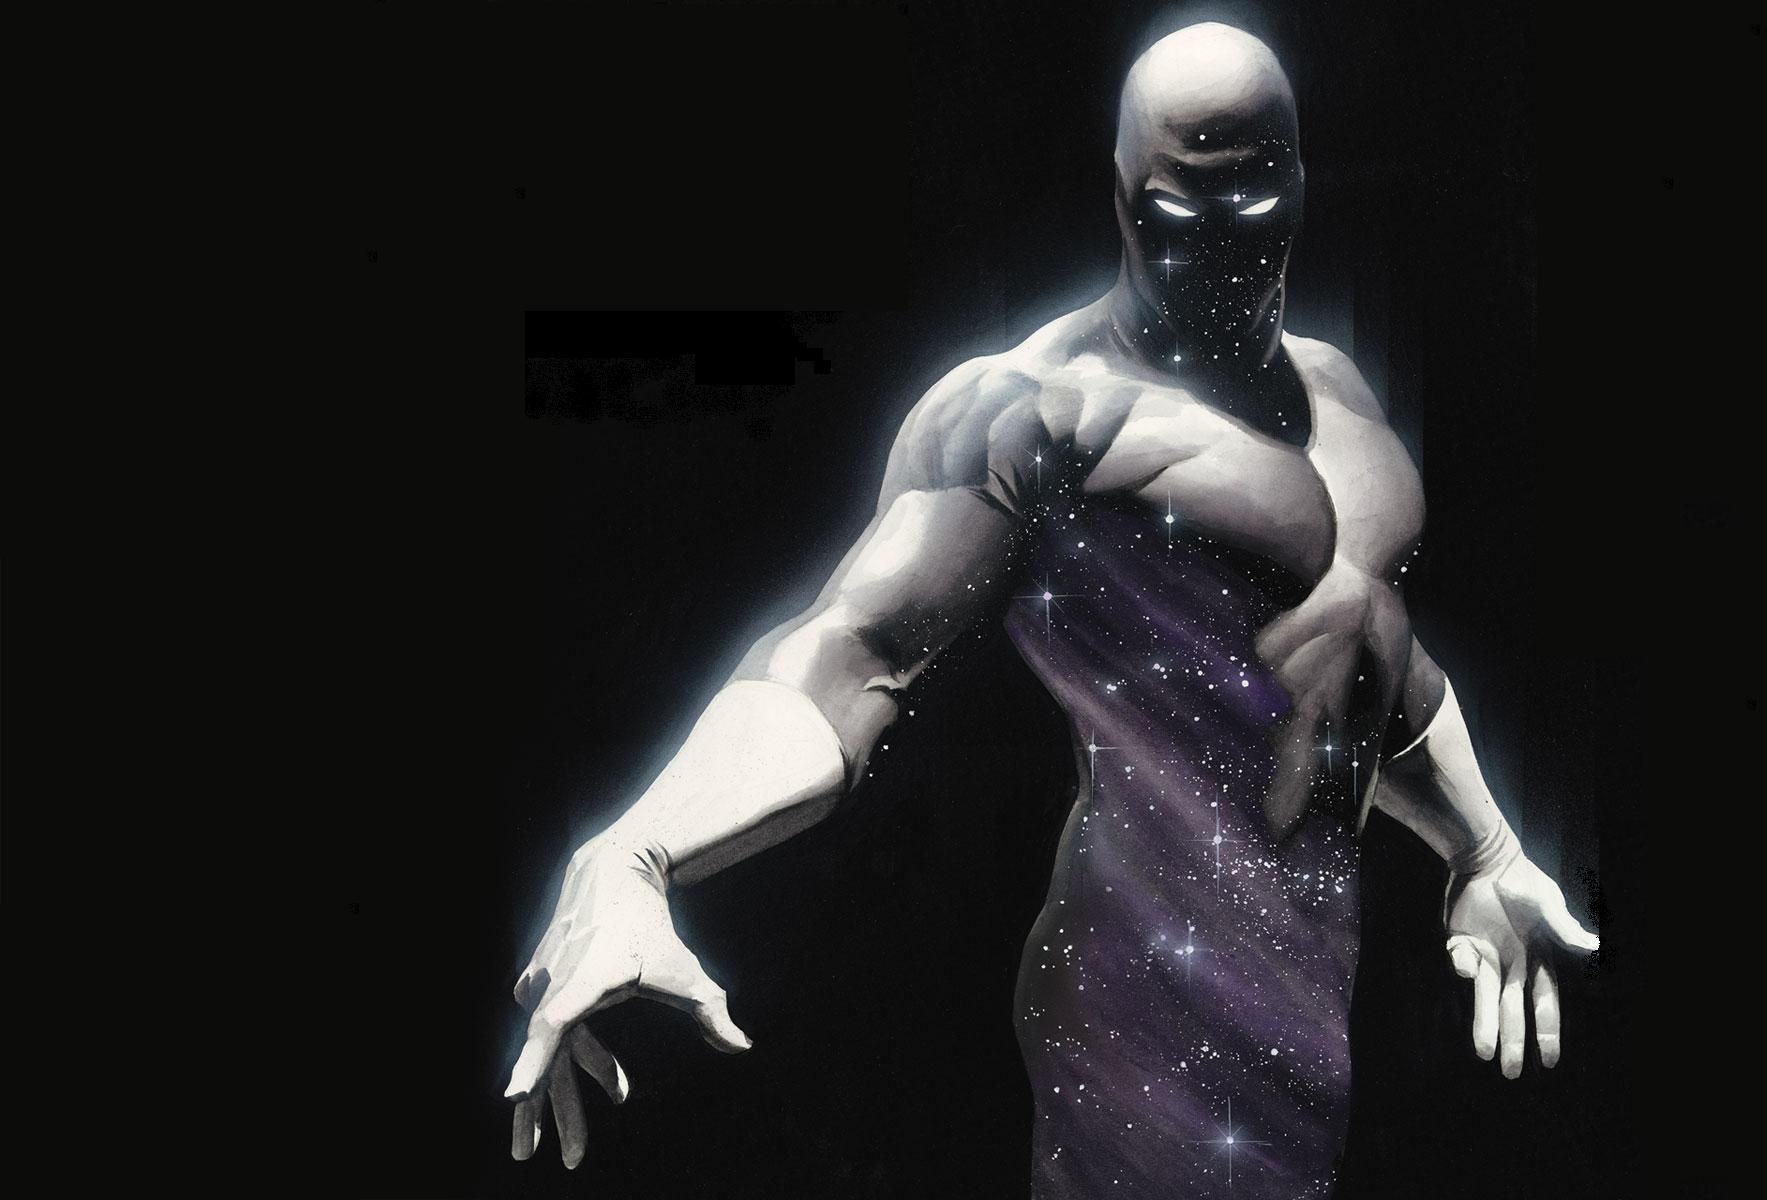 Silver Surfer Wallpapers Top Free Silver Surfer Backgrounds